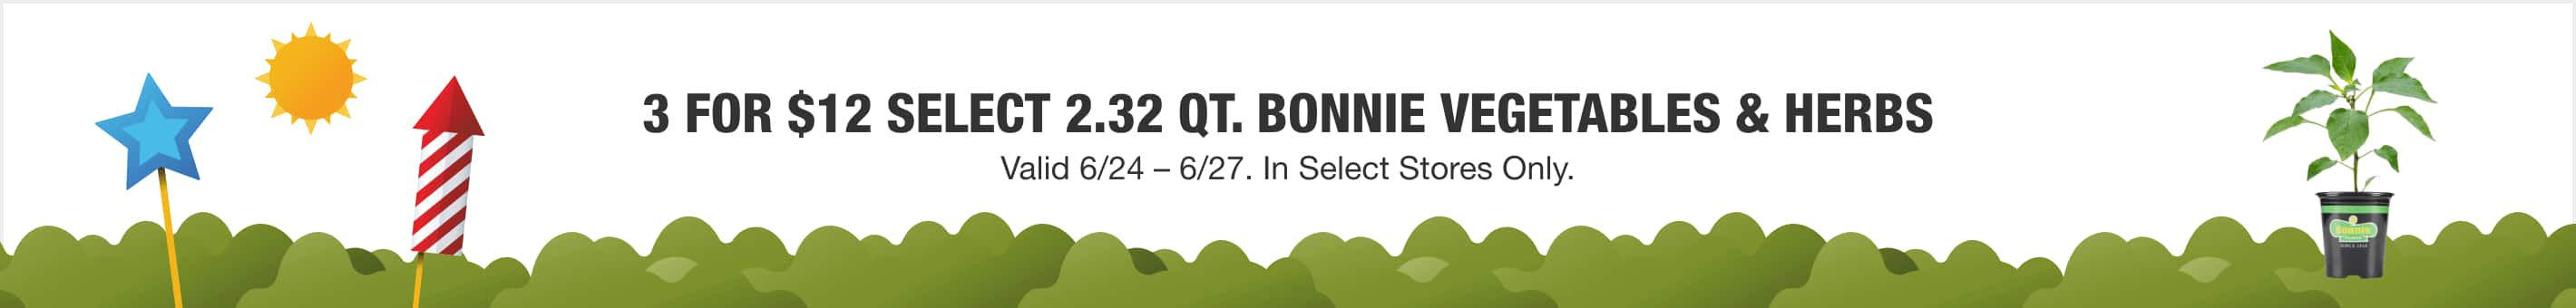 3 FOR $12 SELECT 2.32 QT. BONNIE VEGETABLES & HERBS - Valid 6/24 – 6/27. In Select Stores Only.